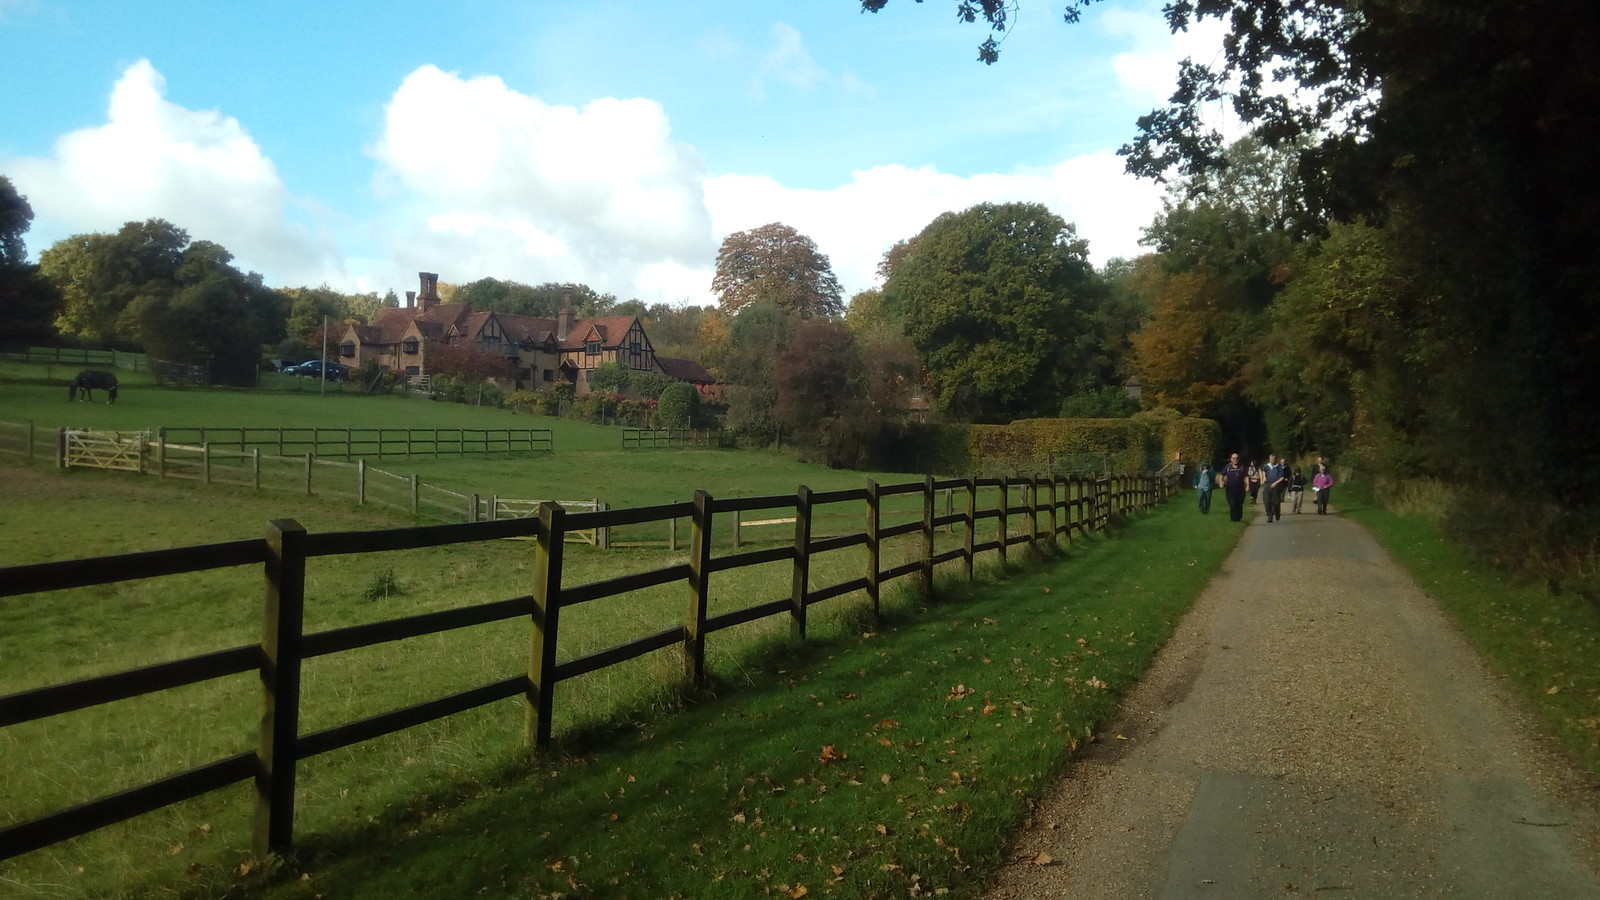 Approaching Little Gaddesden